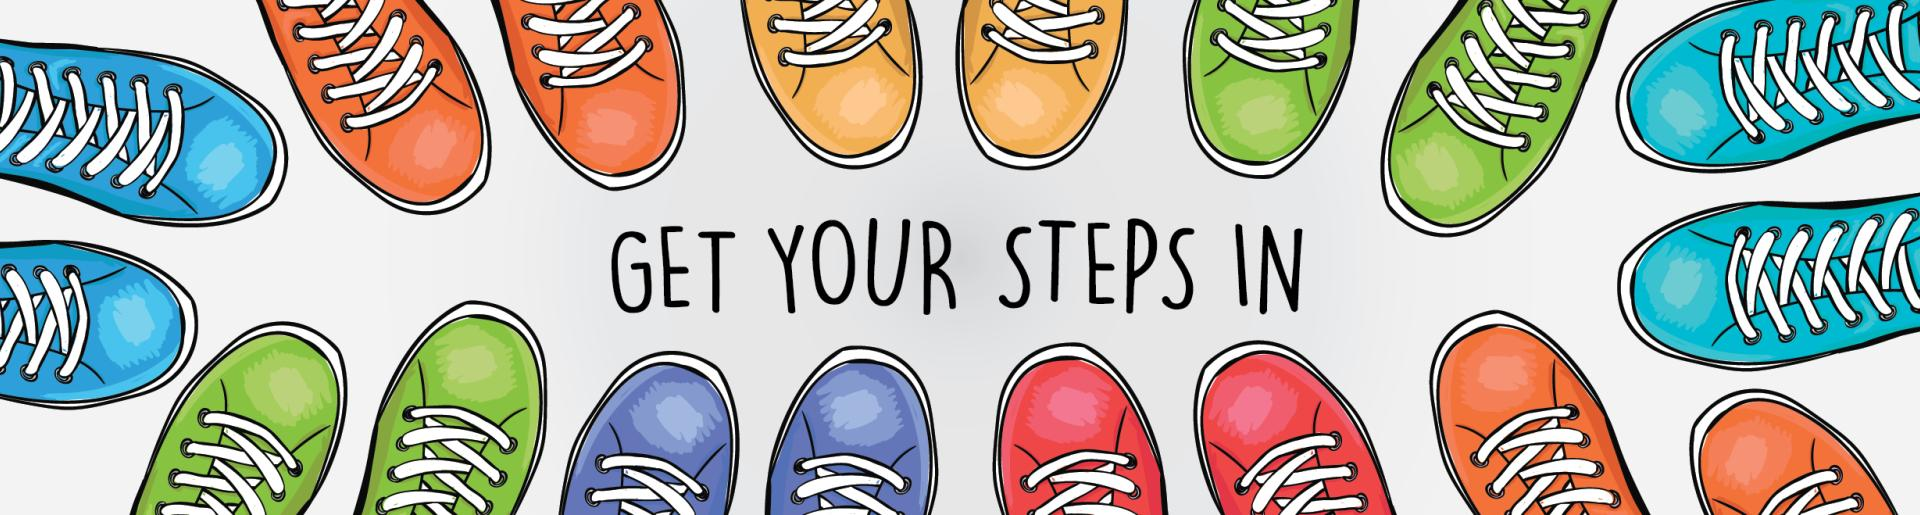 Get Your Steps In